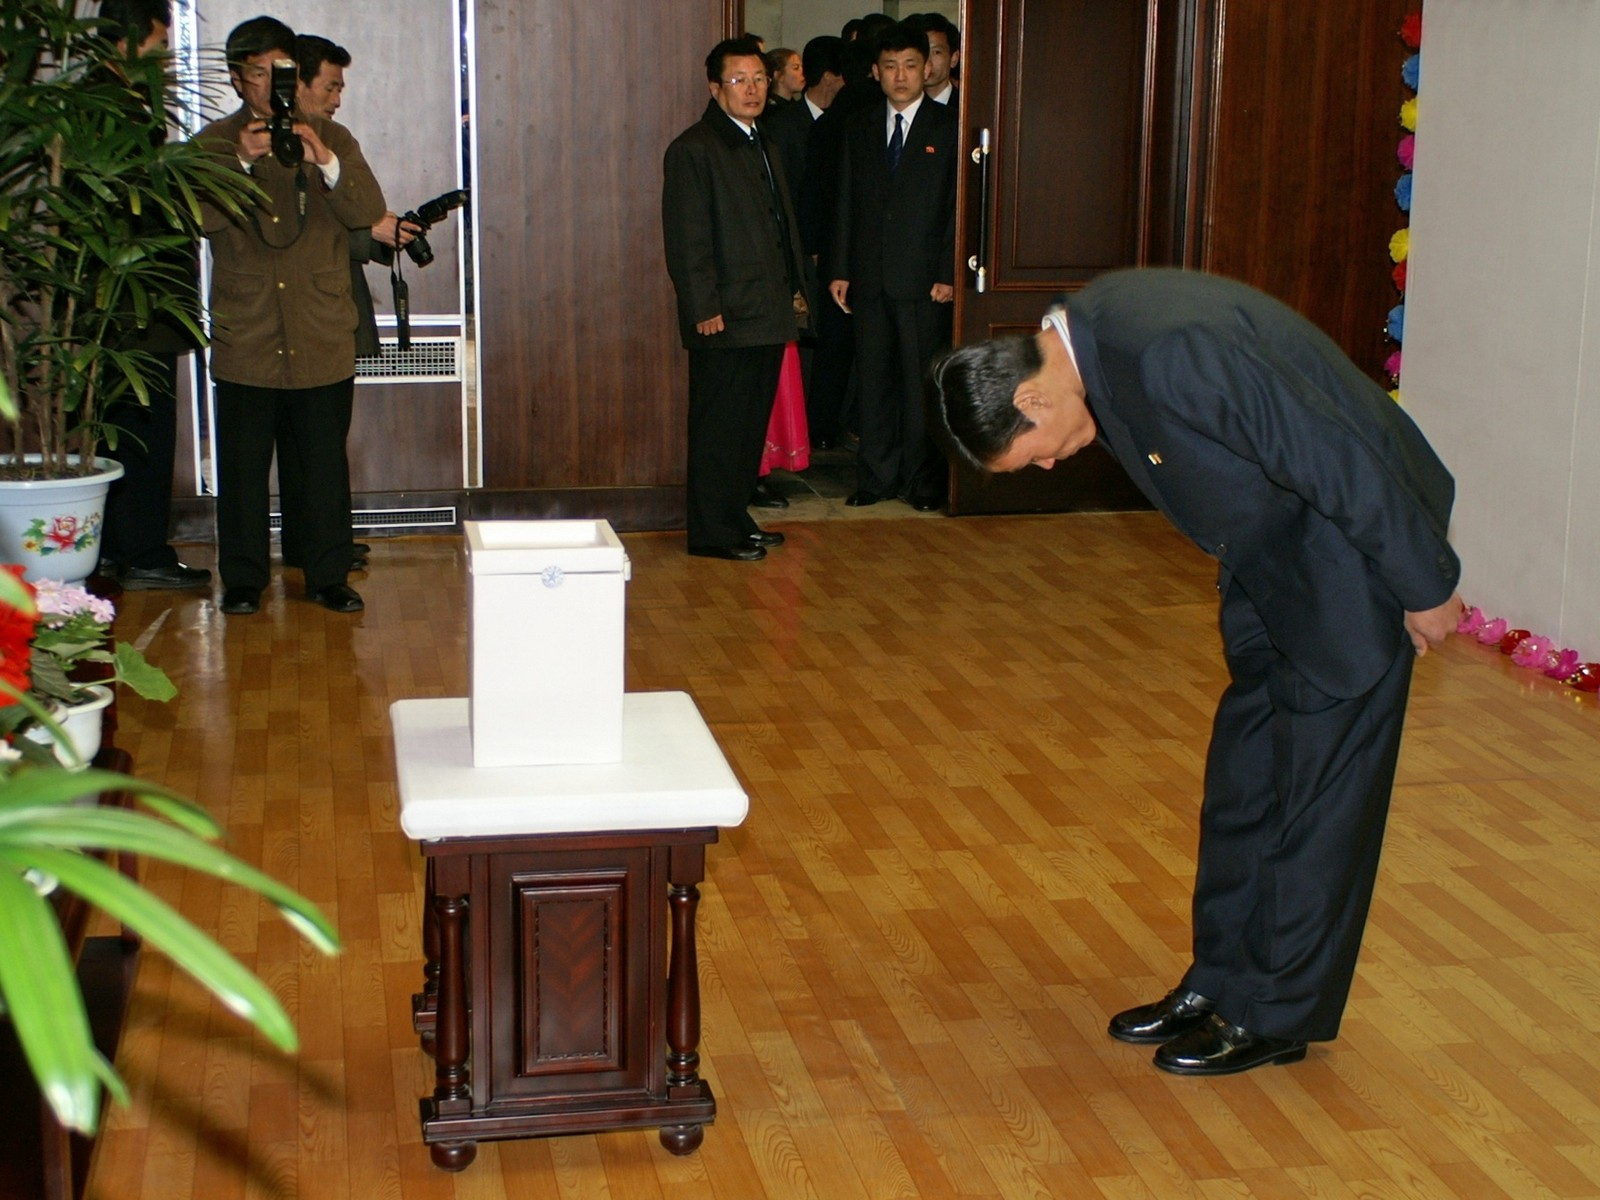 Bowing to the leaders